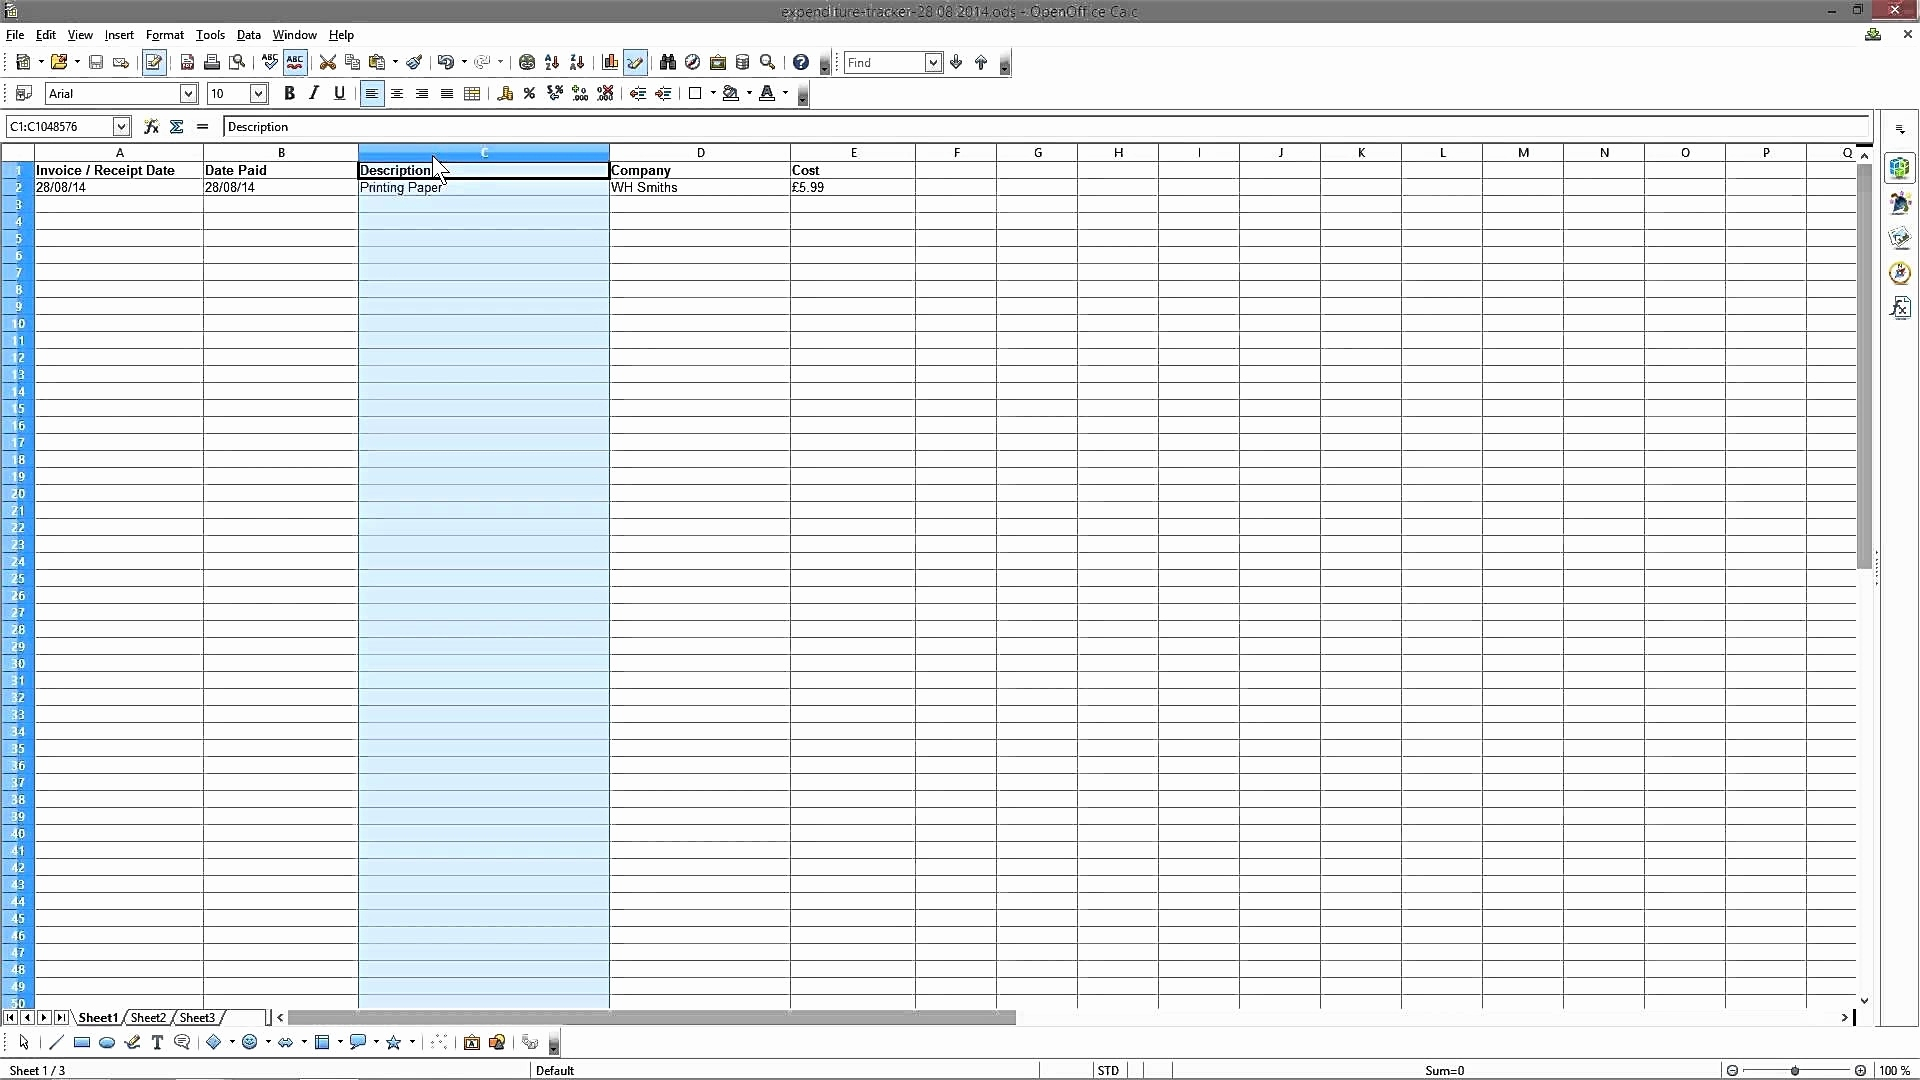 Grant Tracking Spreadsheet Excel Throughout Grant Tracking